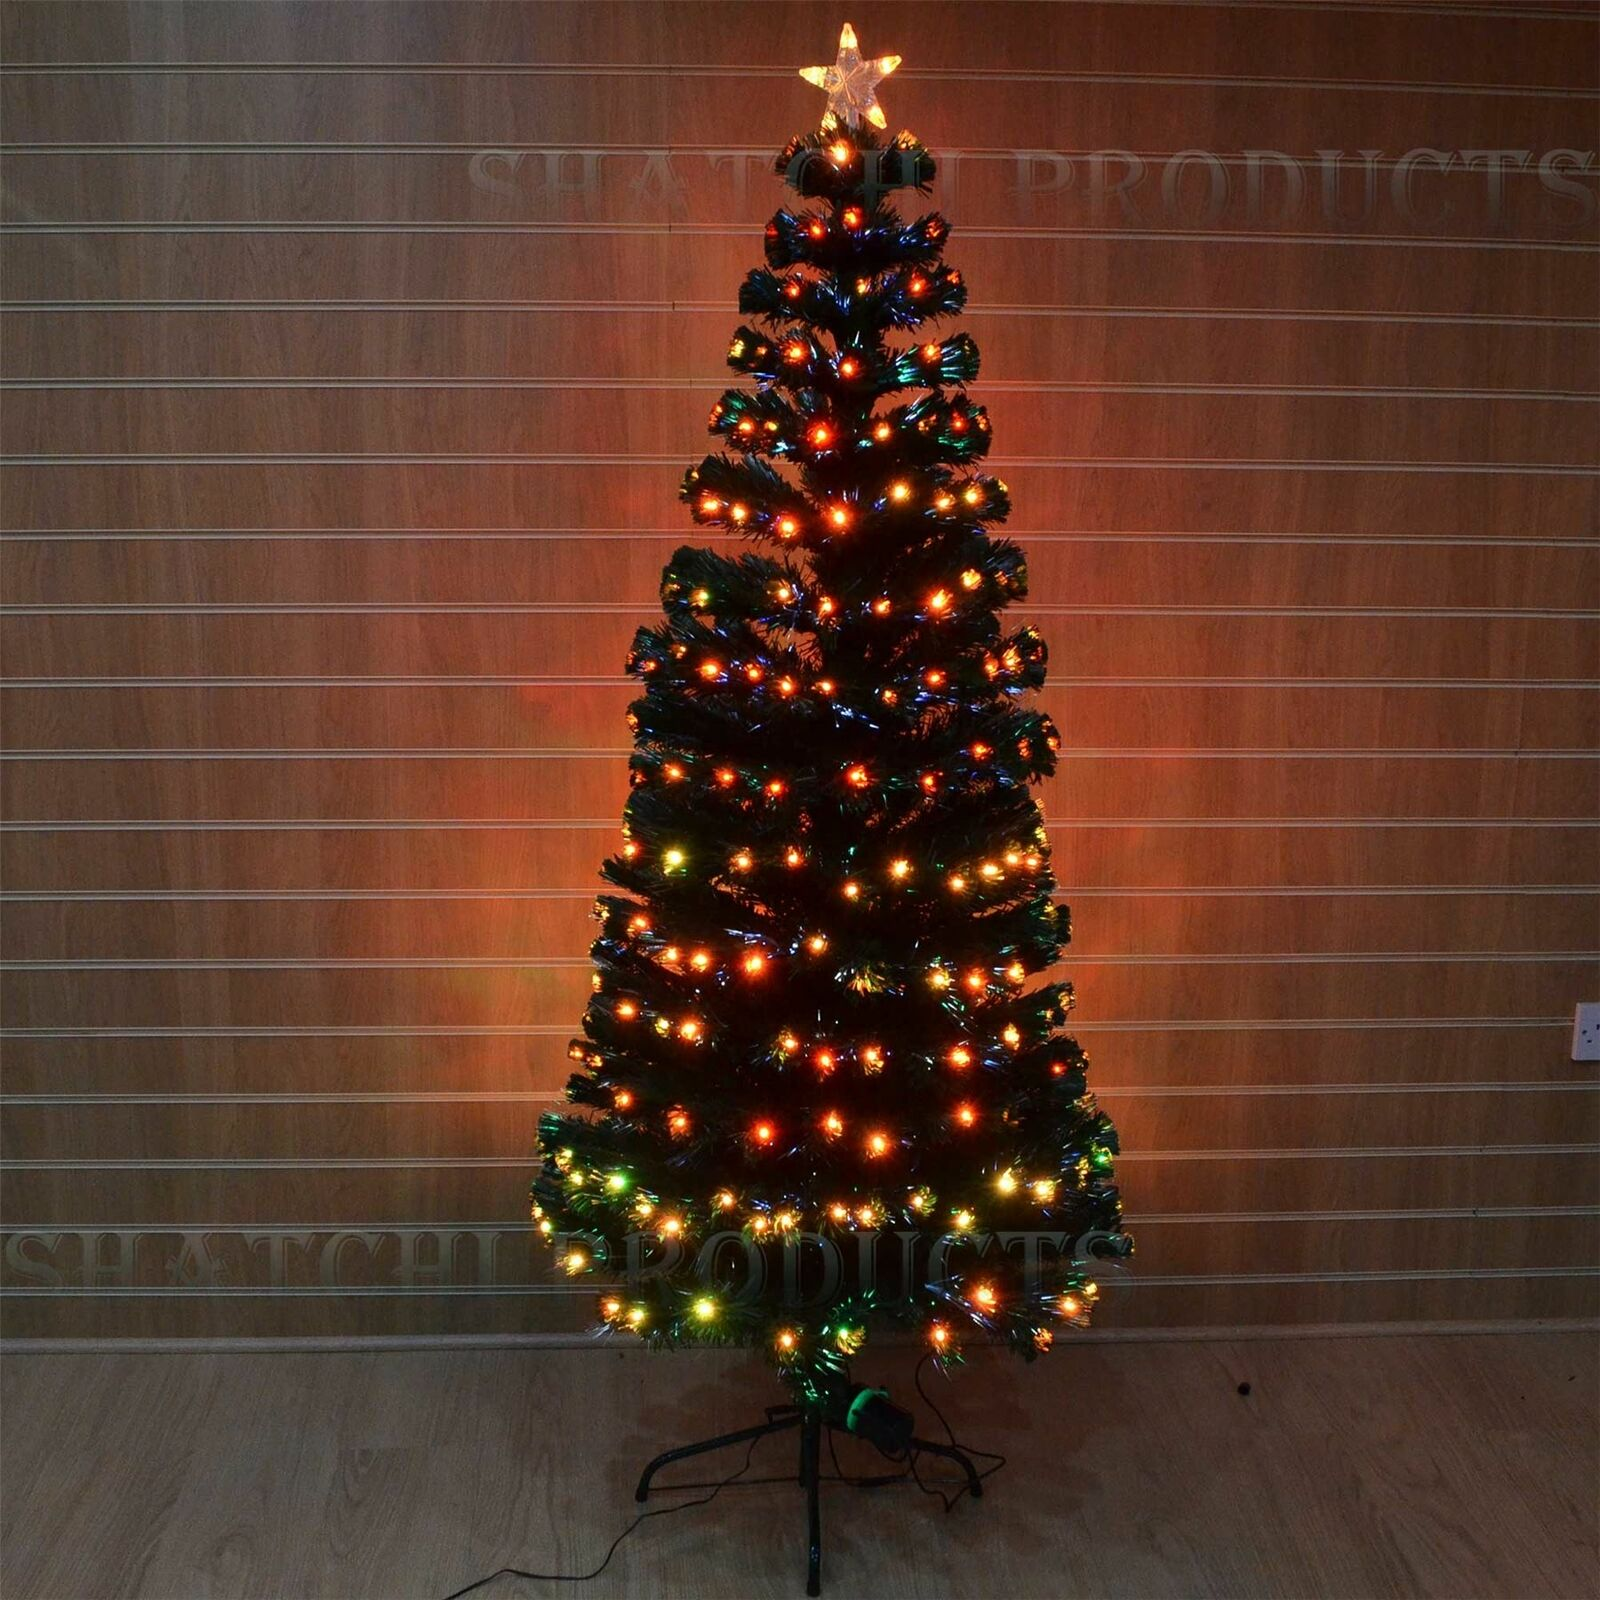 8ft 240cm Pre Lit Fibre Optic Christmas Tree Xmas Lights Home Decor Decorations